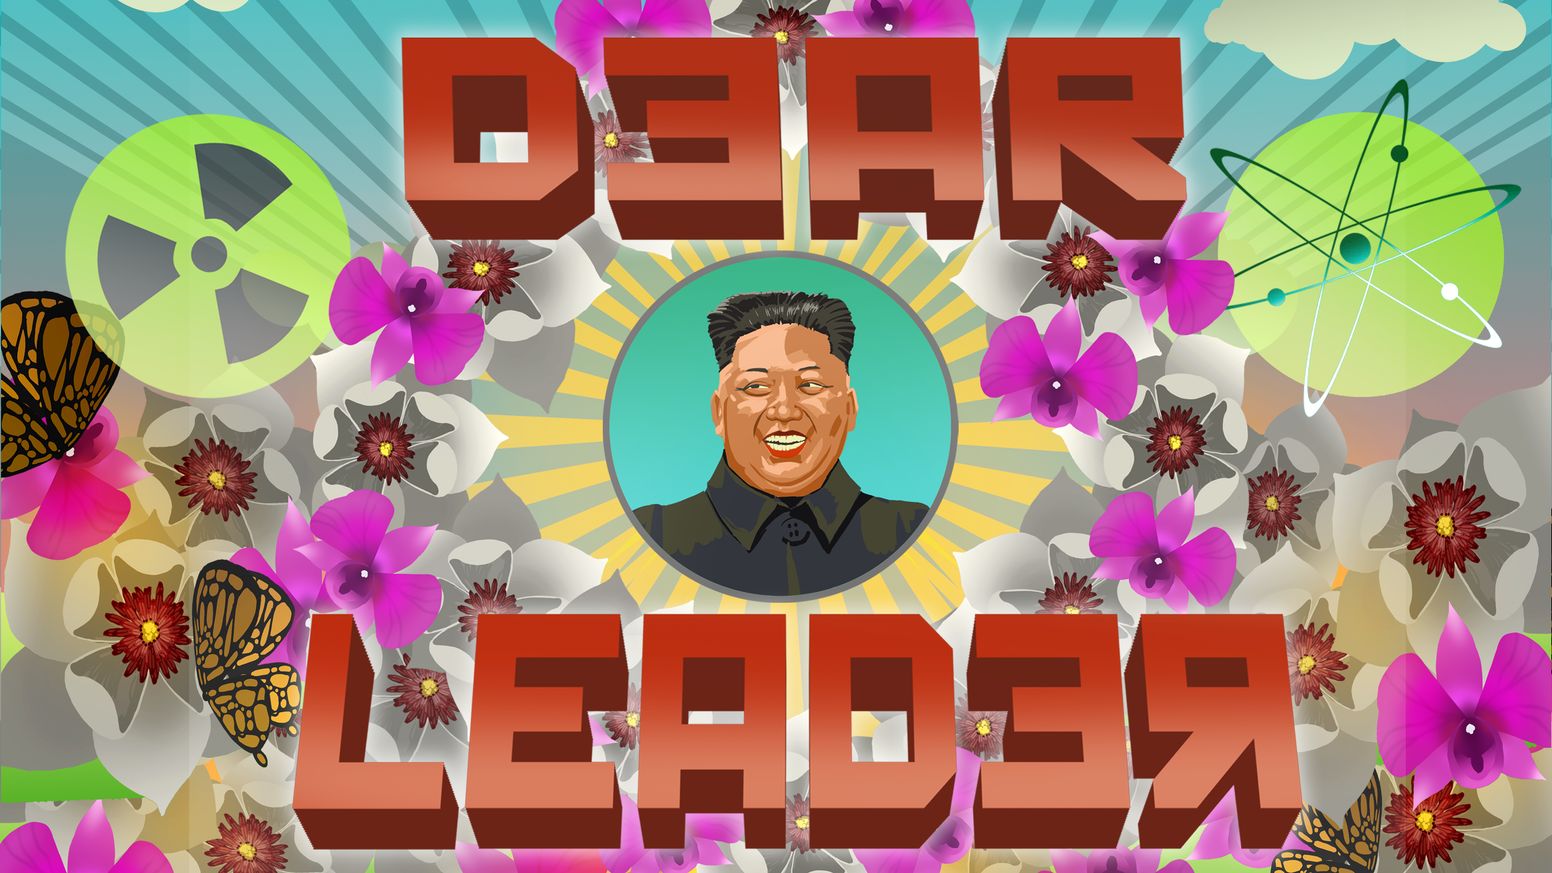 A bootlicking, clapping, problem-making party card game about the awfulness of dictators.